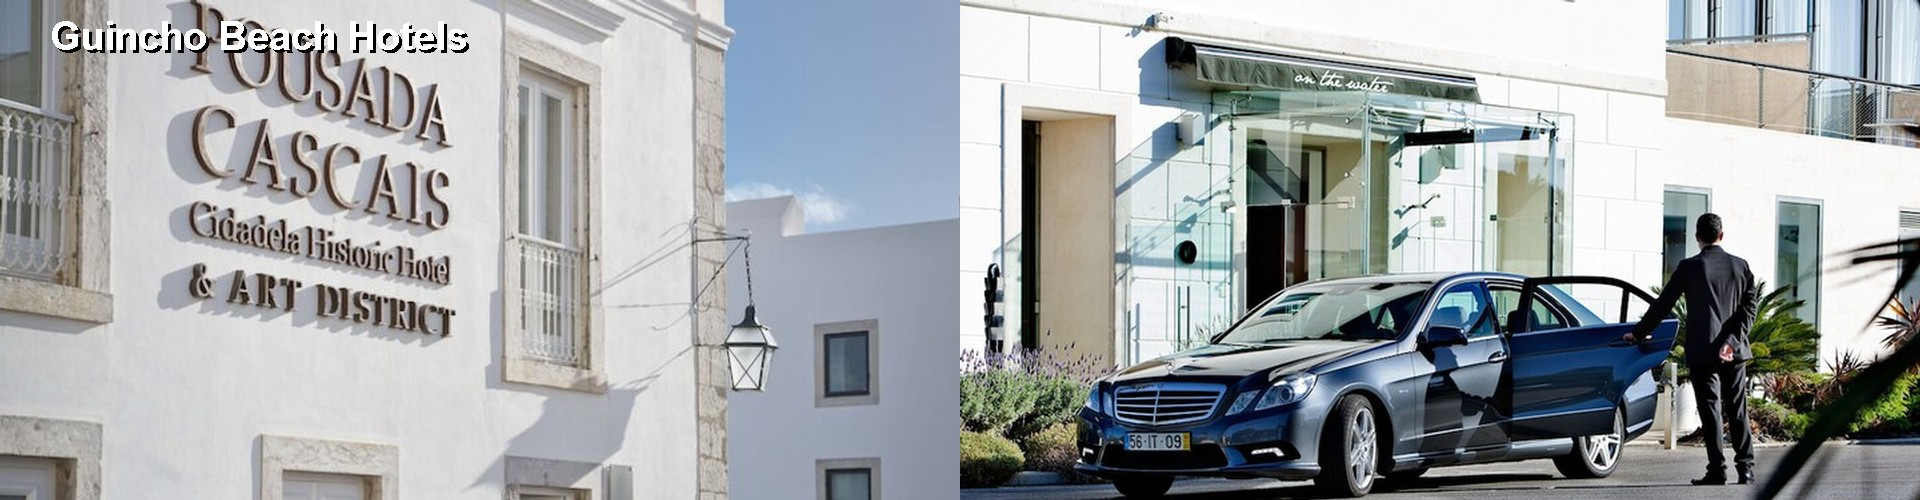 5 Best Hotels near Guincho Beach